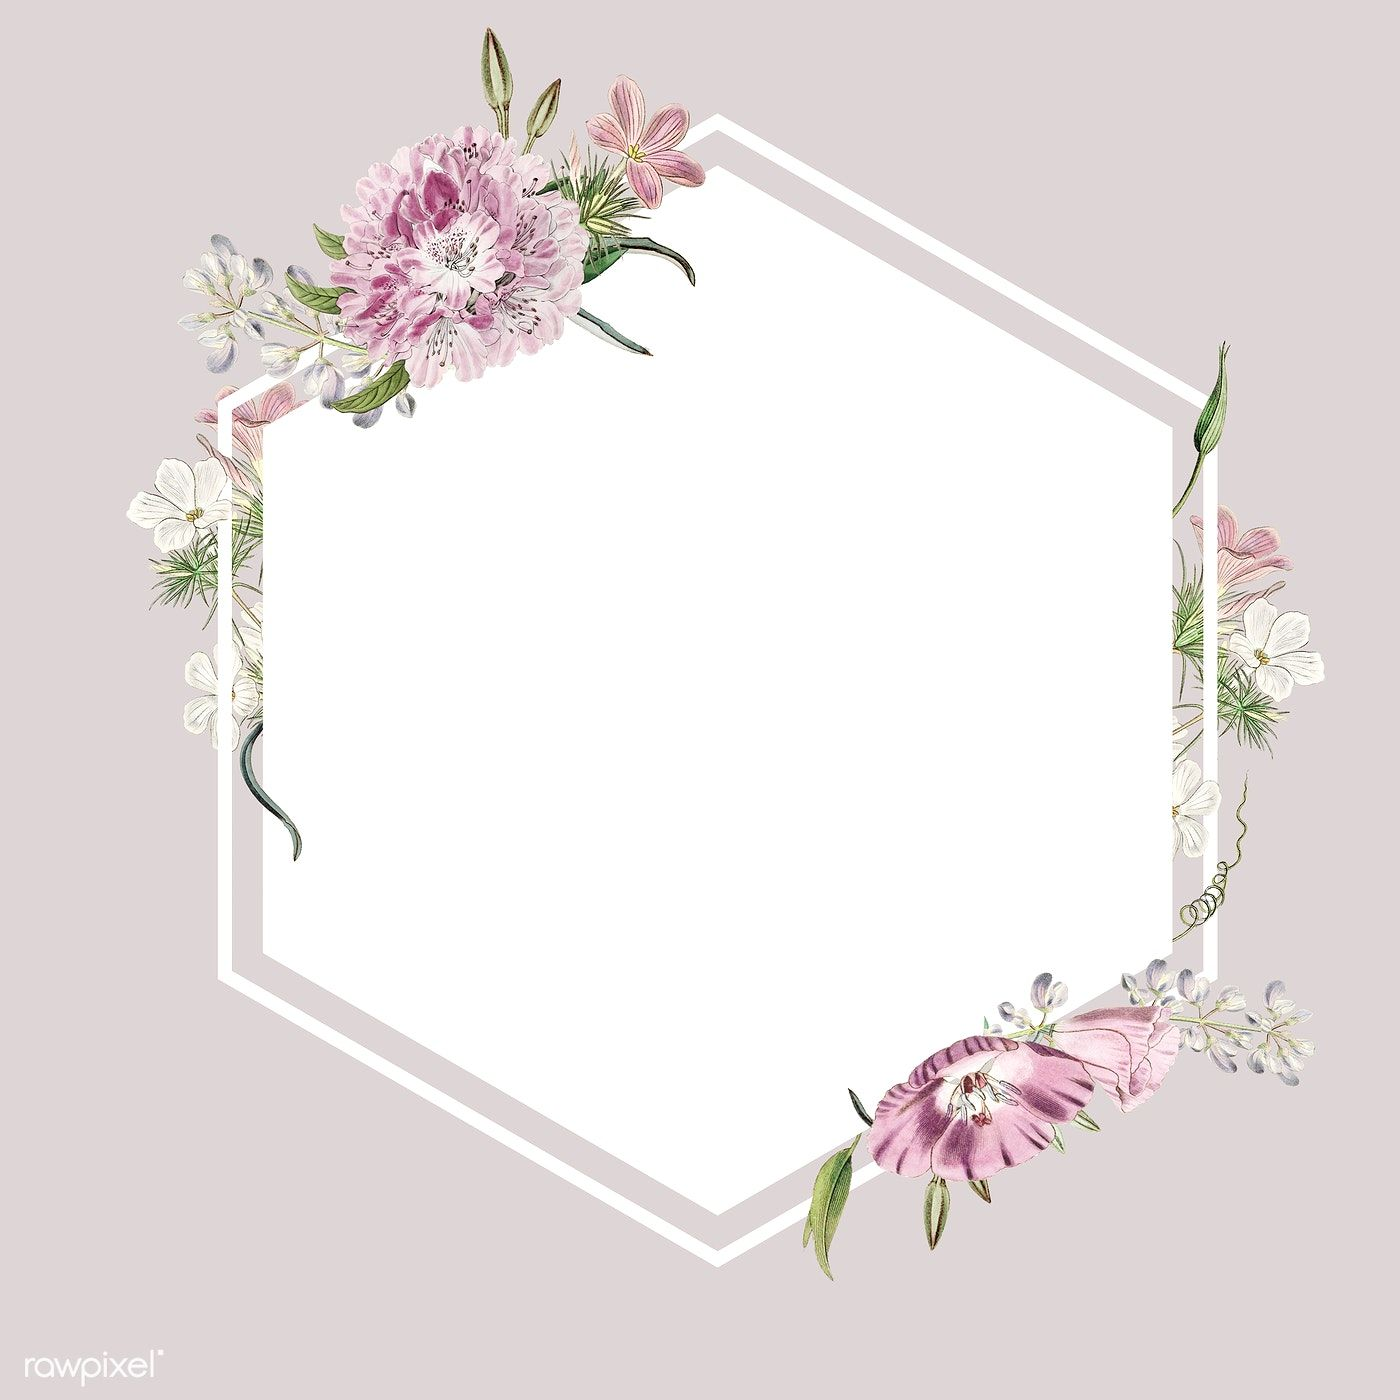 Download Premium Illustration Of Floral Frame Background High Resolution Vintage Floral Backgrounds Flower Frame Frame Design